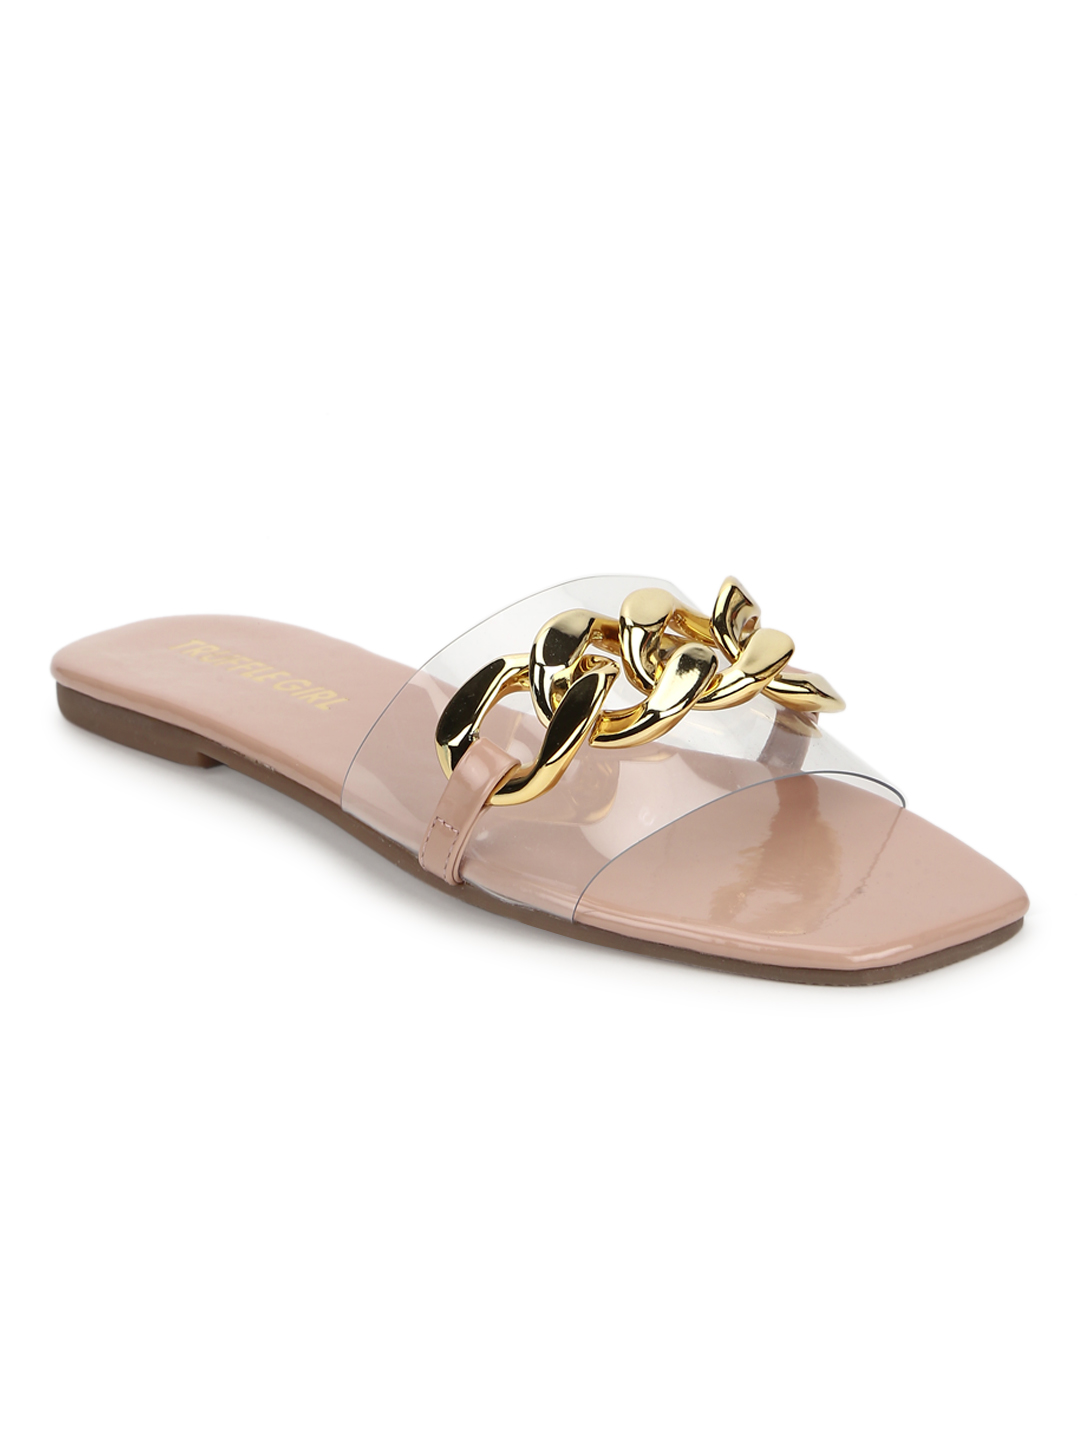 Truffle Collection   Truffle Collection Nude PU Gold Chain Slides